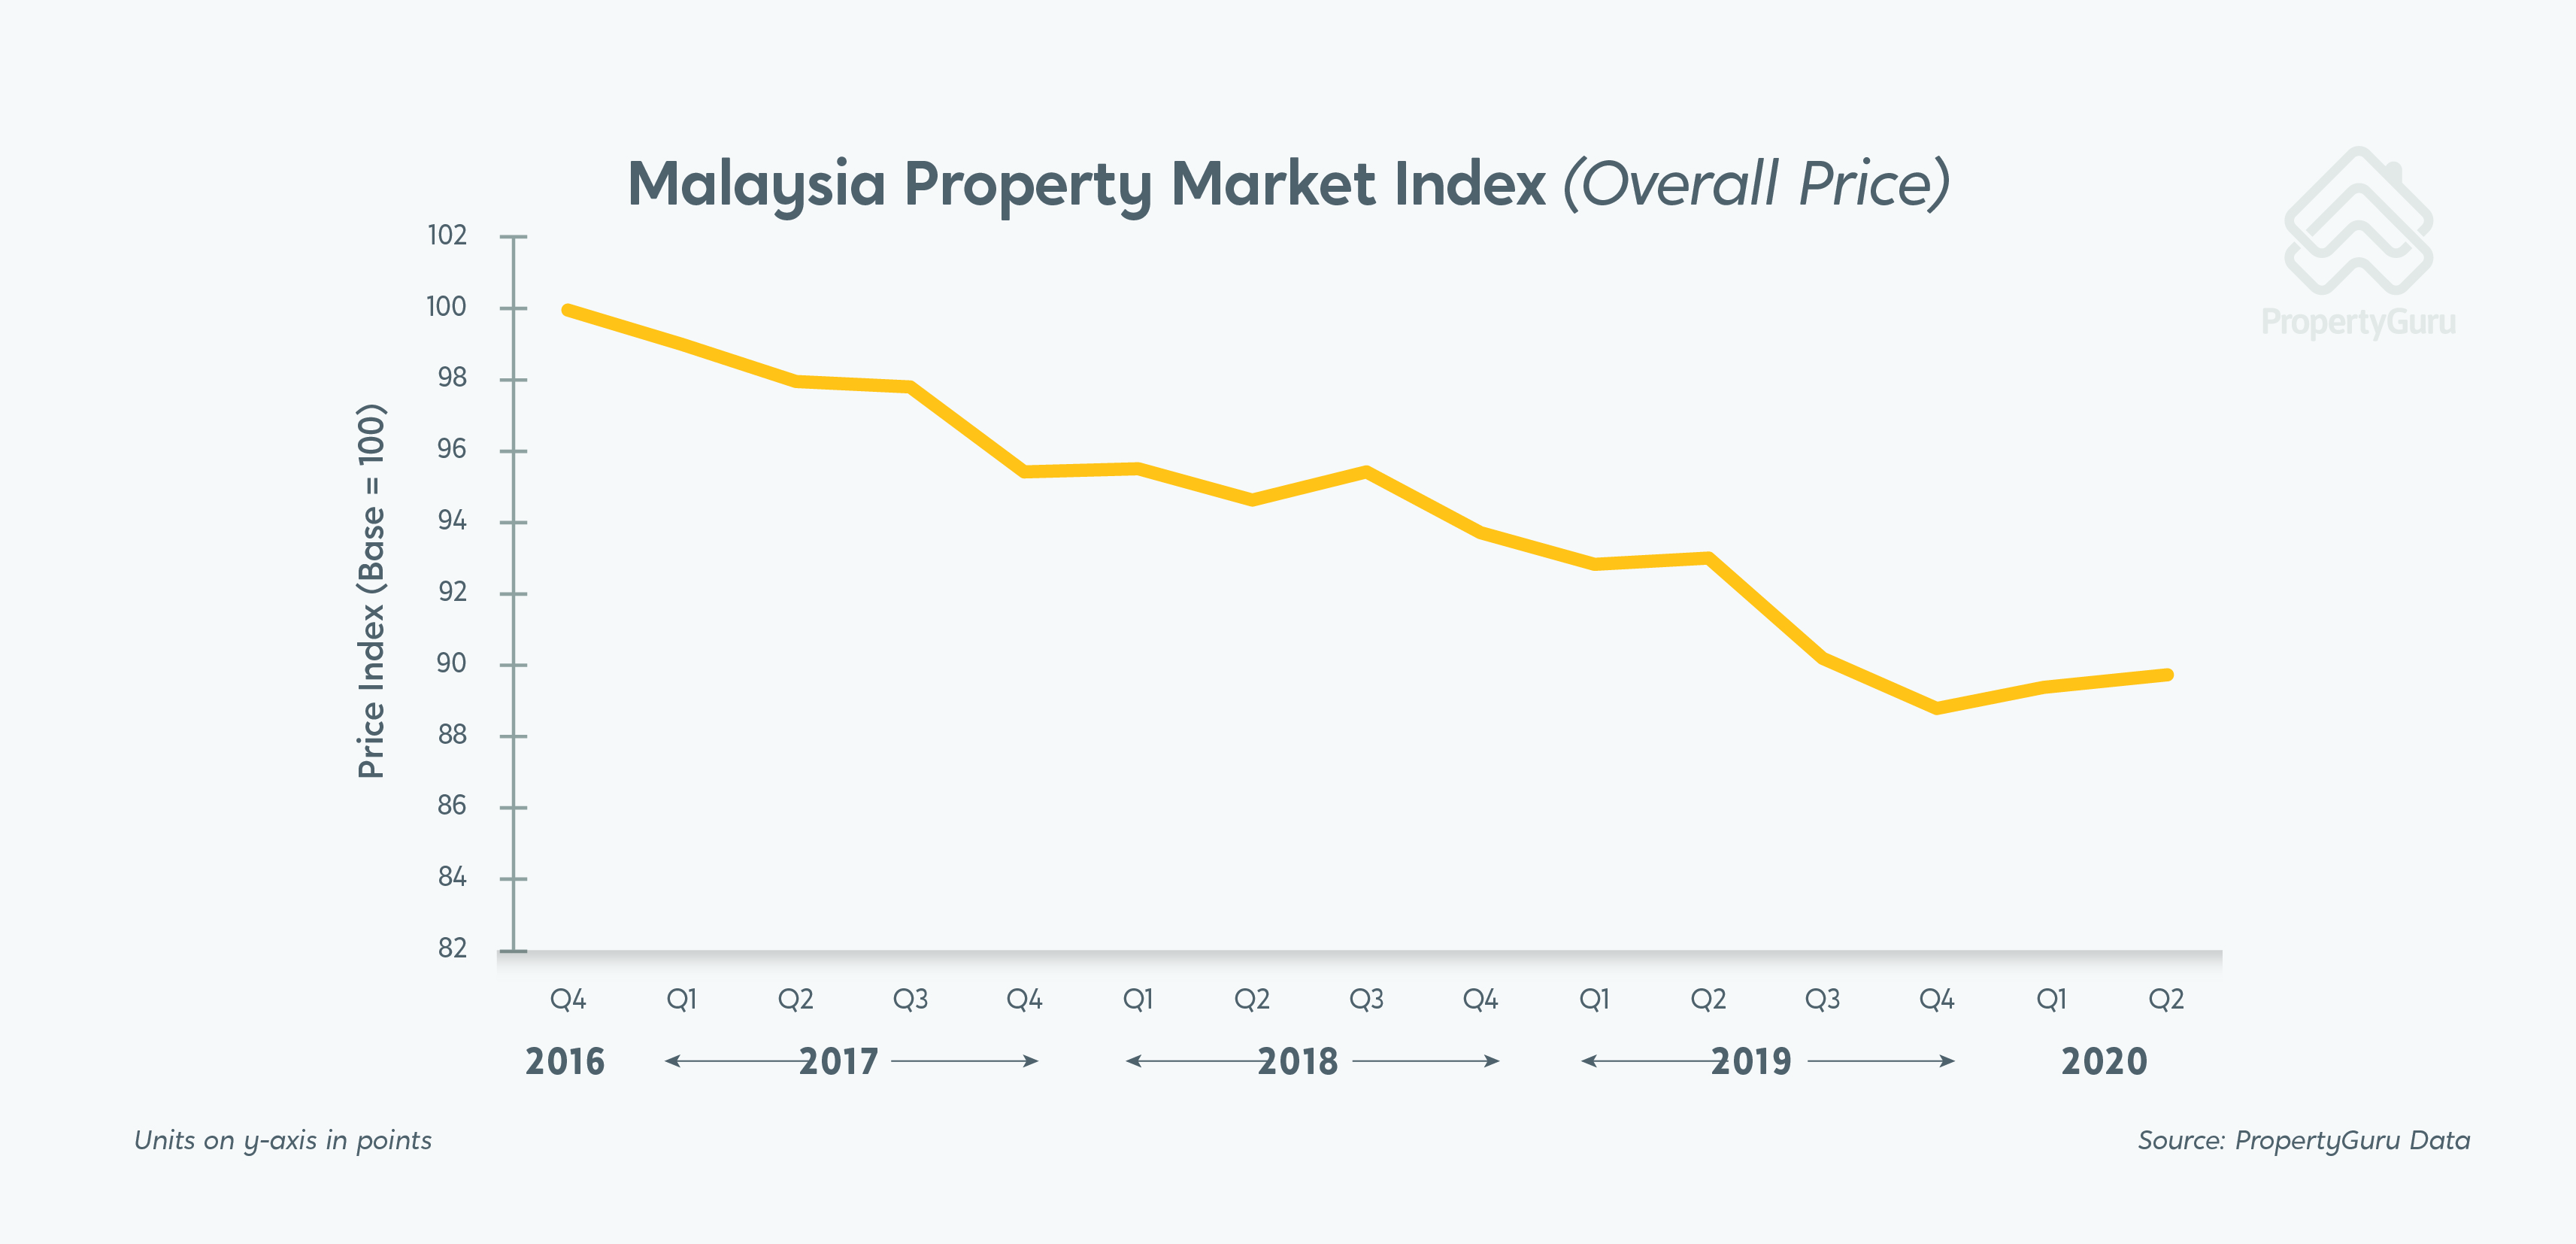 Overall Asking Prices Performed Better Than Anticipated During Mco Propertyguru Malaysia